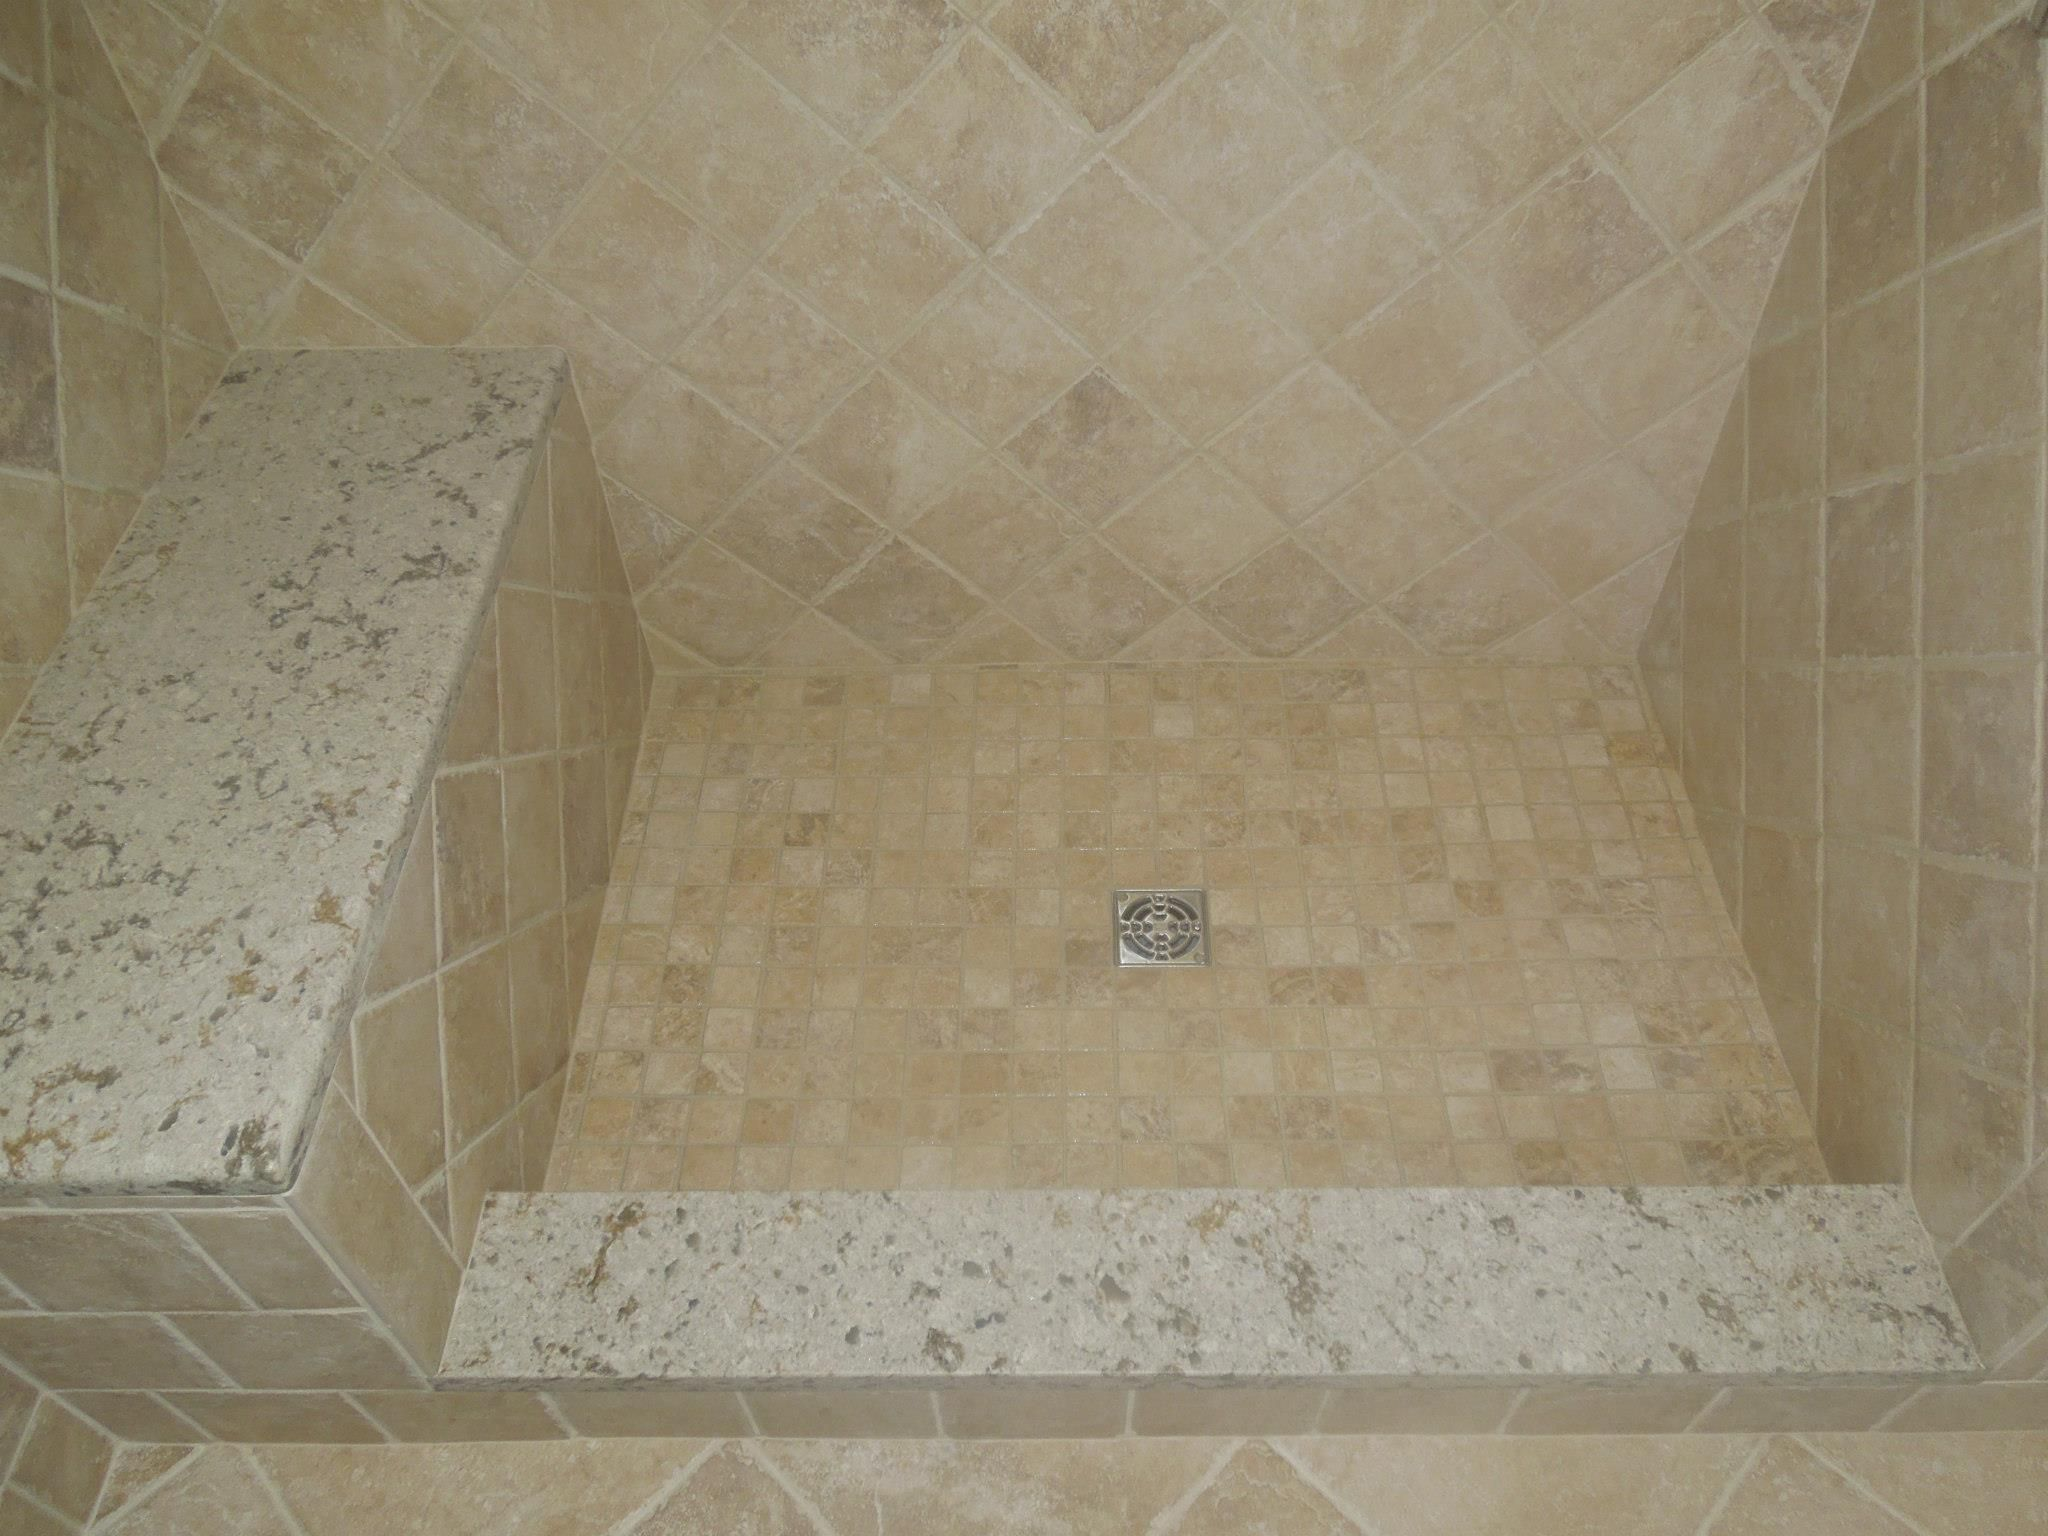 Cambria Windermere Bench Seat And Shower Curb Shower Curb Bathroom Shower Bathroom Renovation